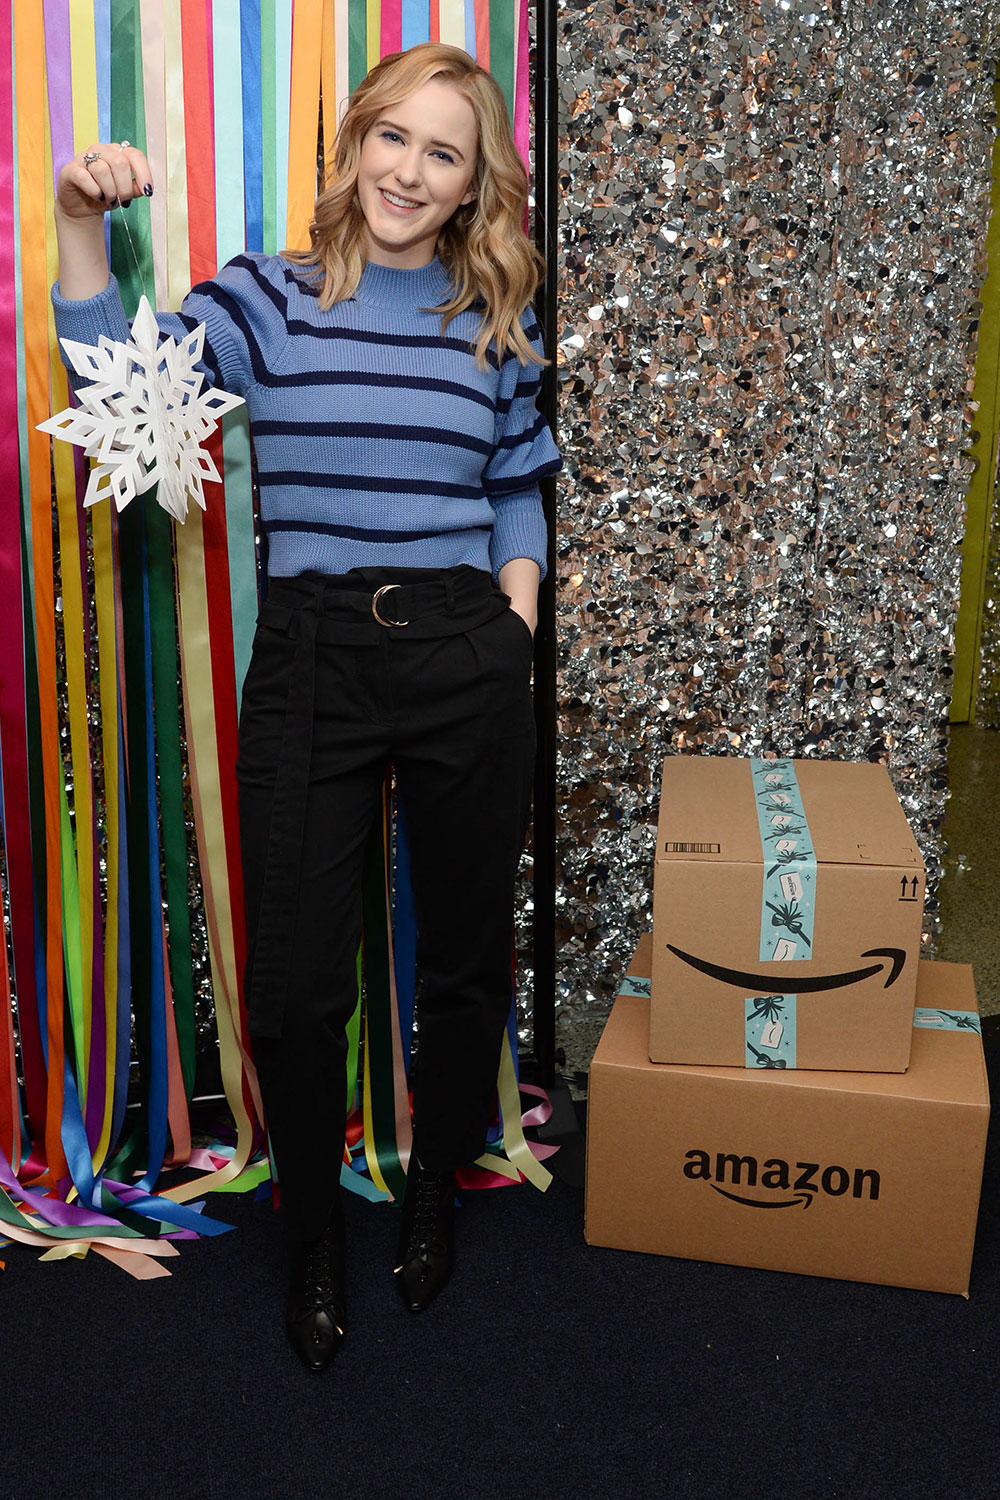 Rachel Brosnahan joins Amazon in Delivering Smiles this holiday season at Covenant House New York.